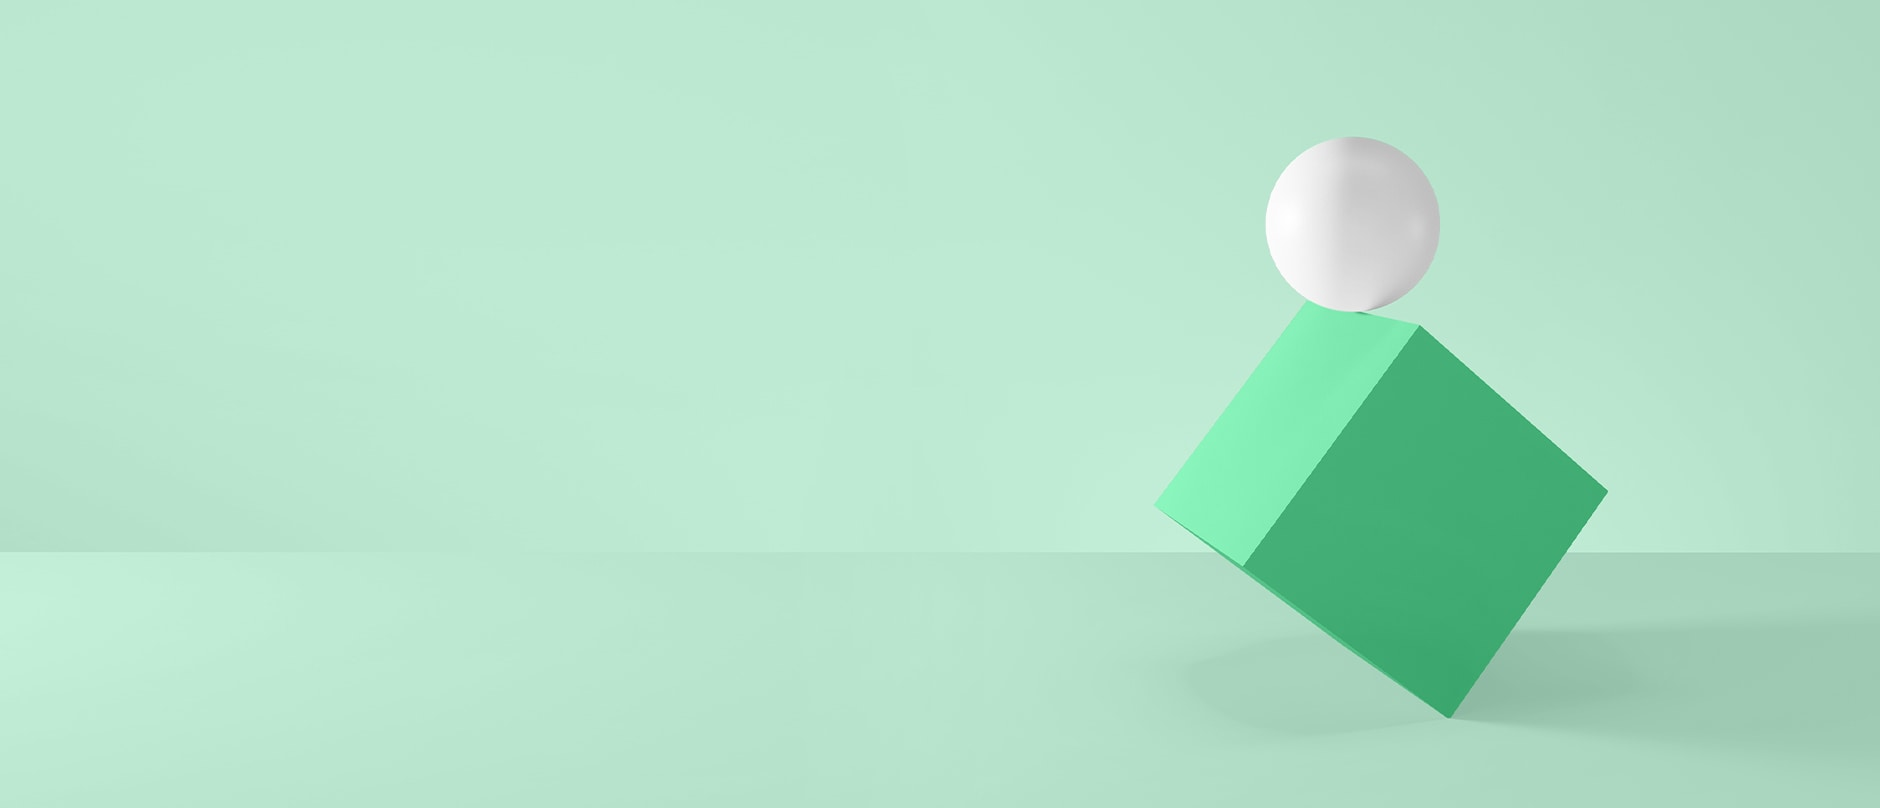 green square and white ball